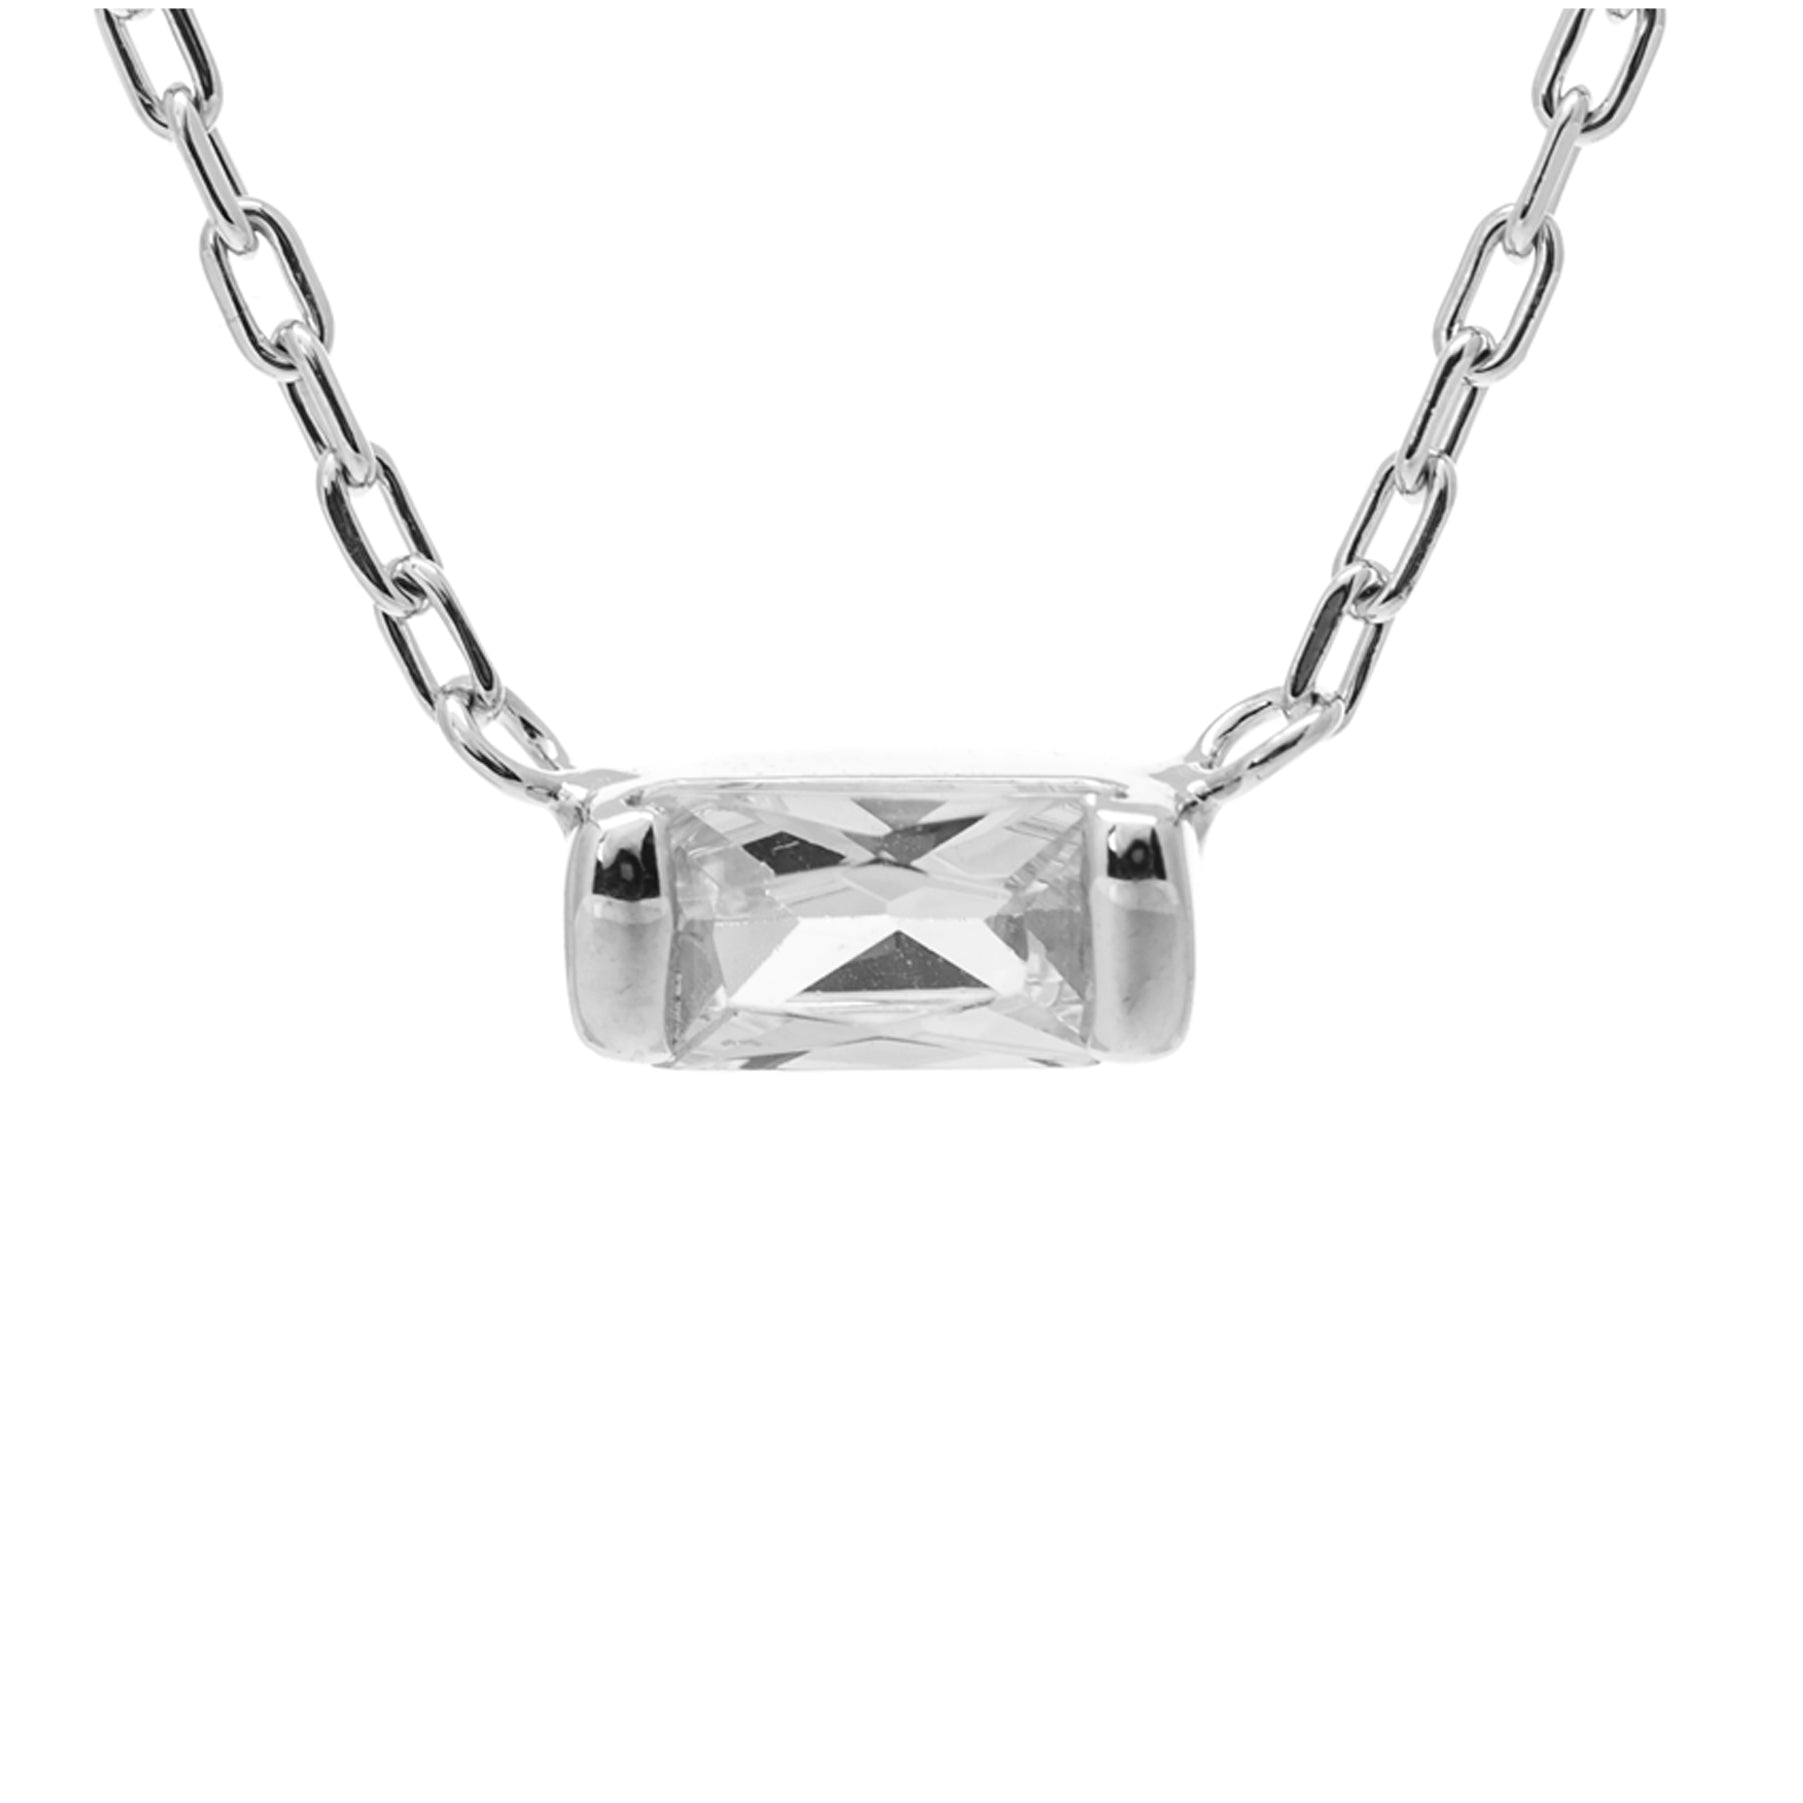 Dainty Sterling Silver Rectangular Bar Necklace